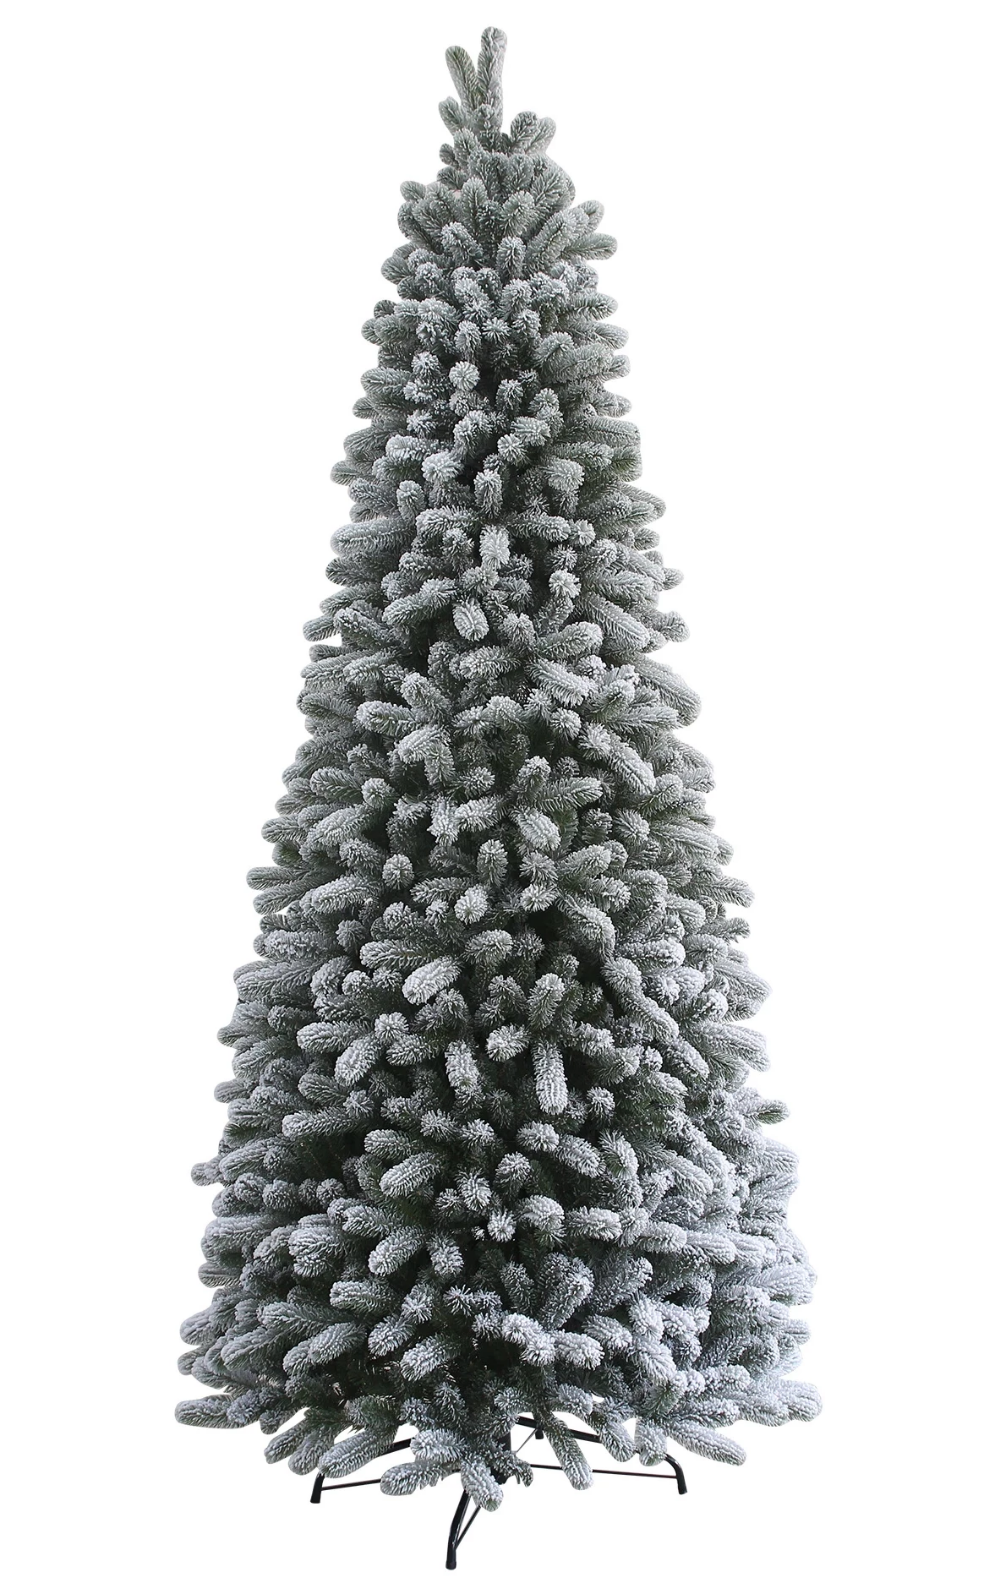 12 King Flock Slim Quick Shape Artificial Christmas Tree With 1250 Warm White Led Lights Slim Artificial Christmas Trees Slim Christmas Tree Flocked Artificial Christmas Trees